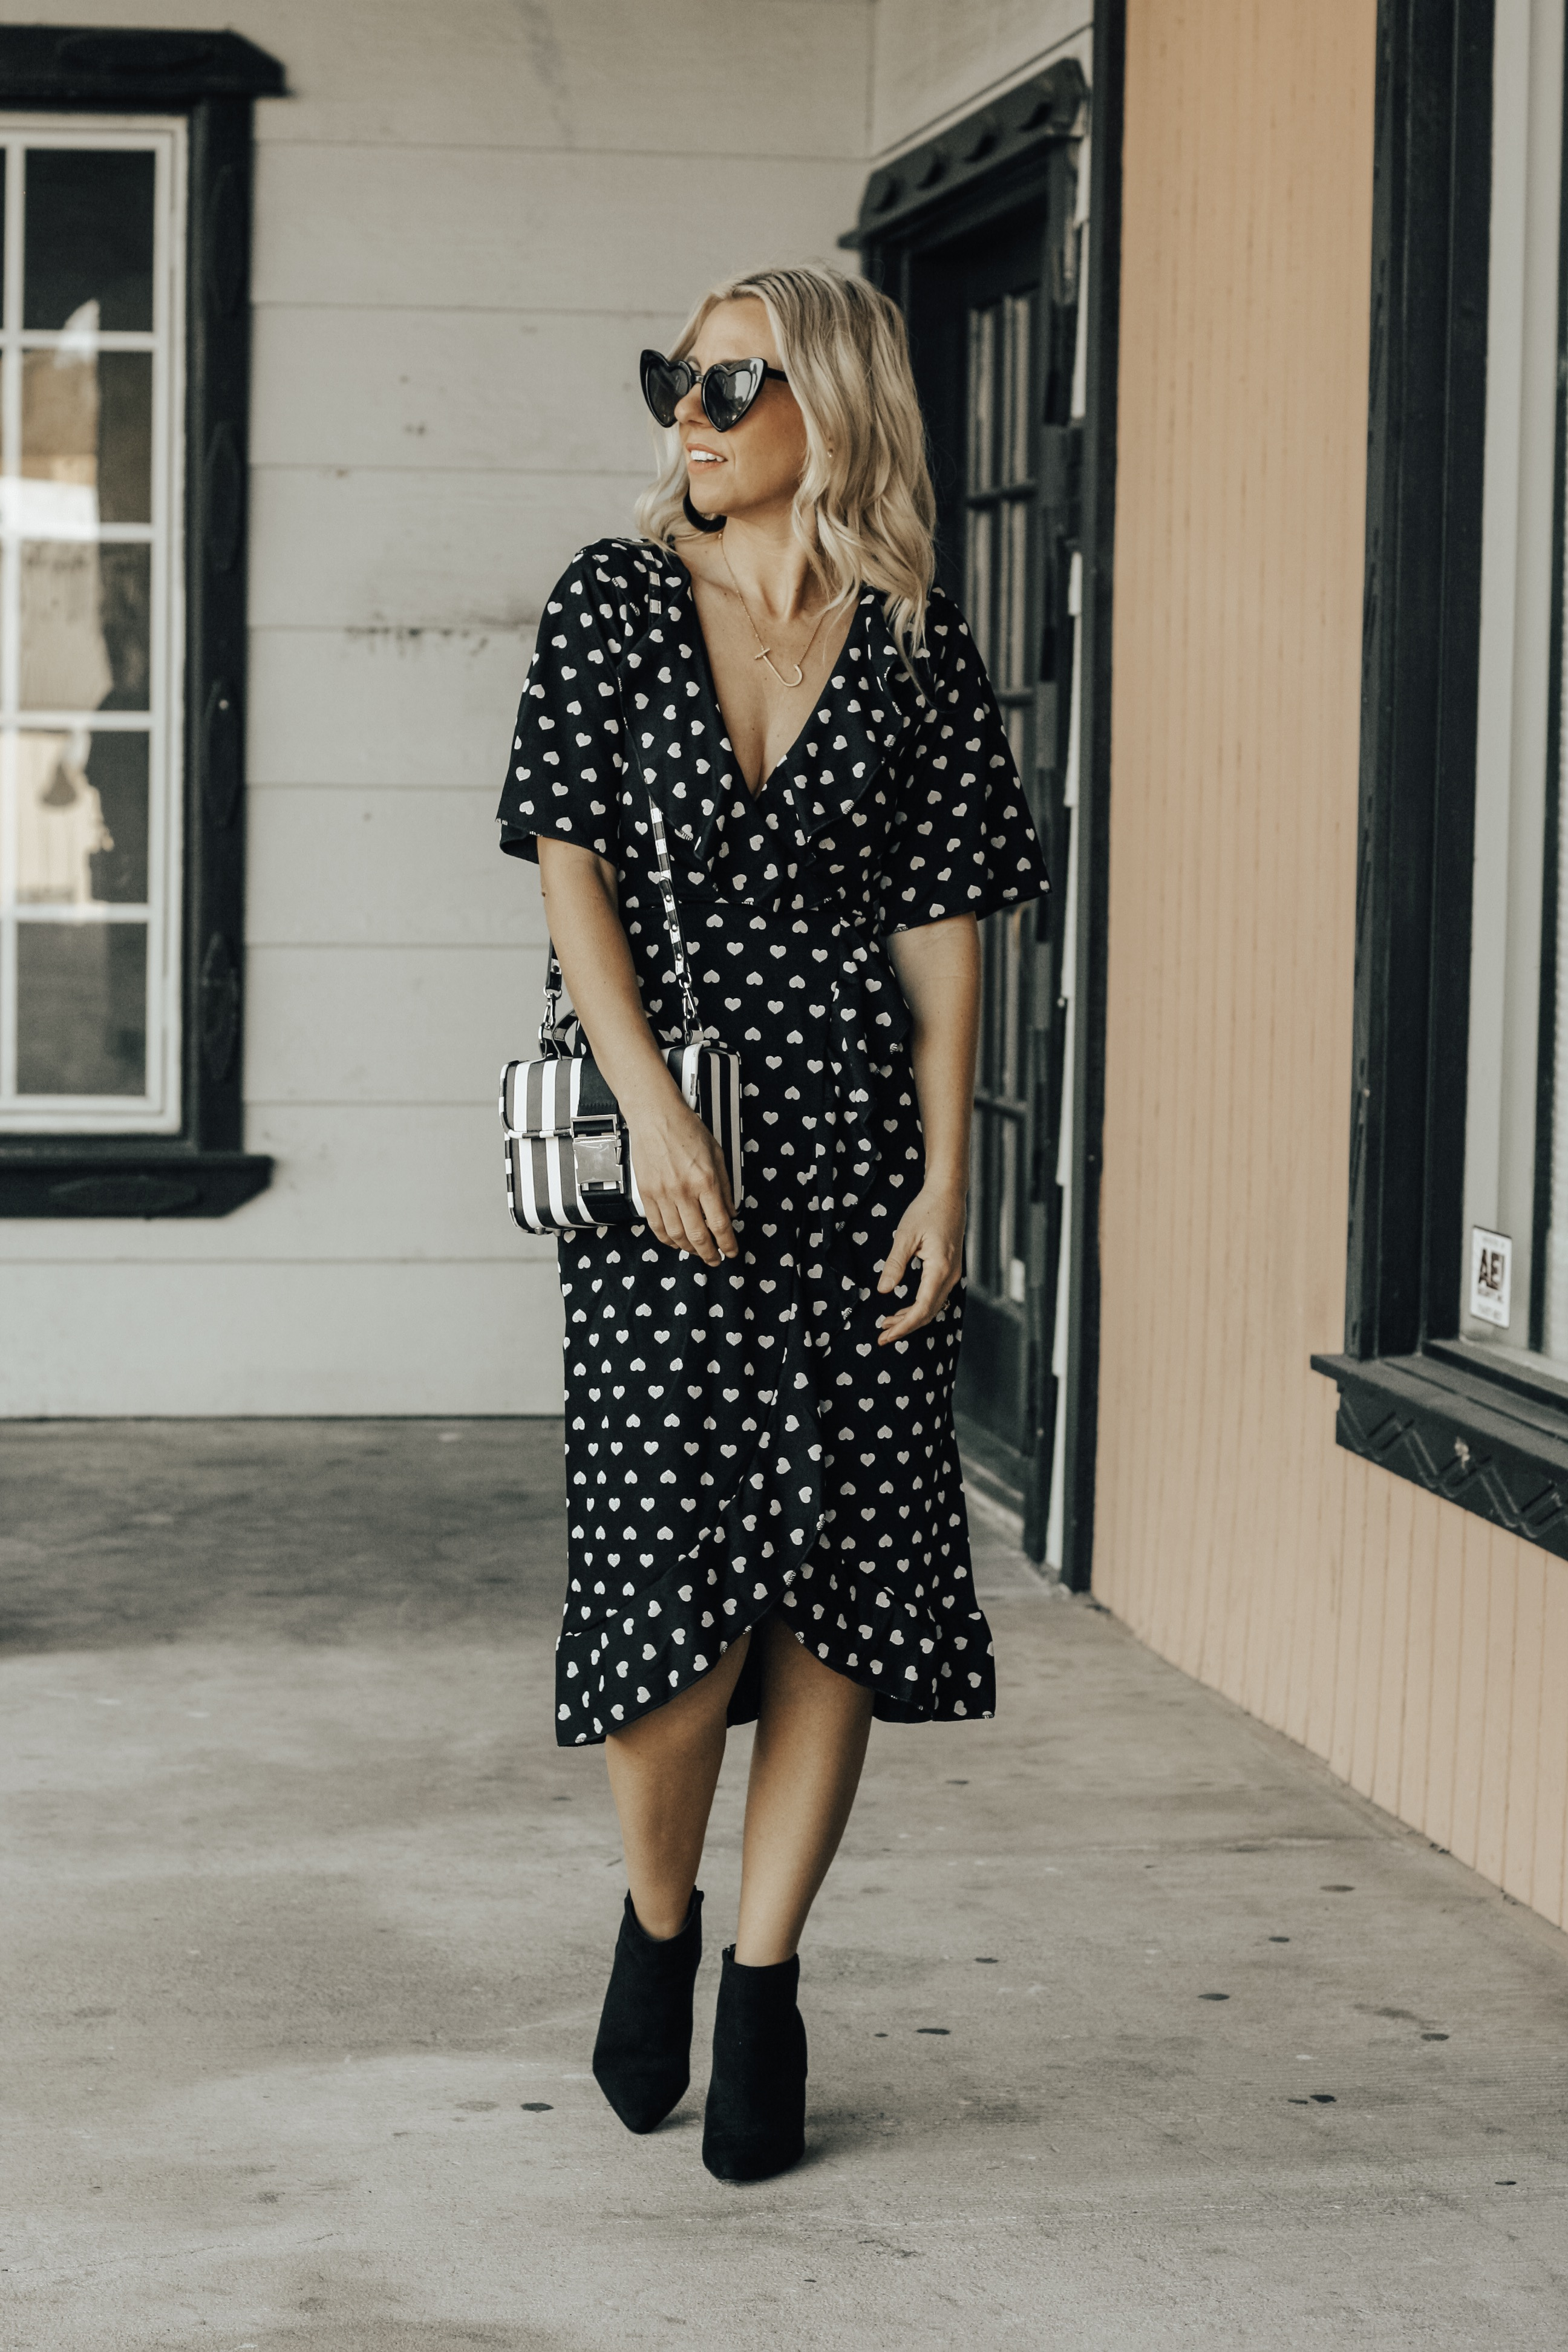 TWO VALENTINE'S DATE NIGHT LOOKS- Jaclyn De Leon Style + heard midi dress + black and white outfit + Valentine outfit inspo + asos + black booties + heart sunglasses + striped handbag + ruffle dot baby doll dress + abercrombie + faux fur jacket + stilettos + girls night out + dress up + spring street style